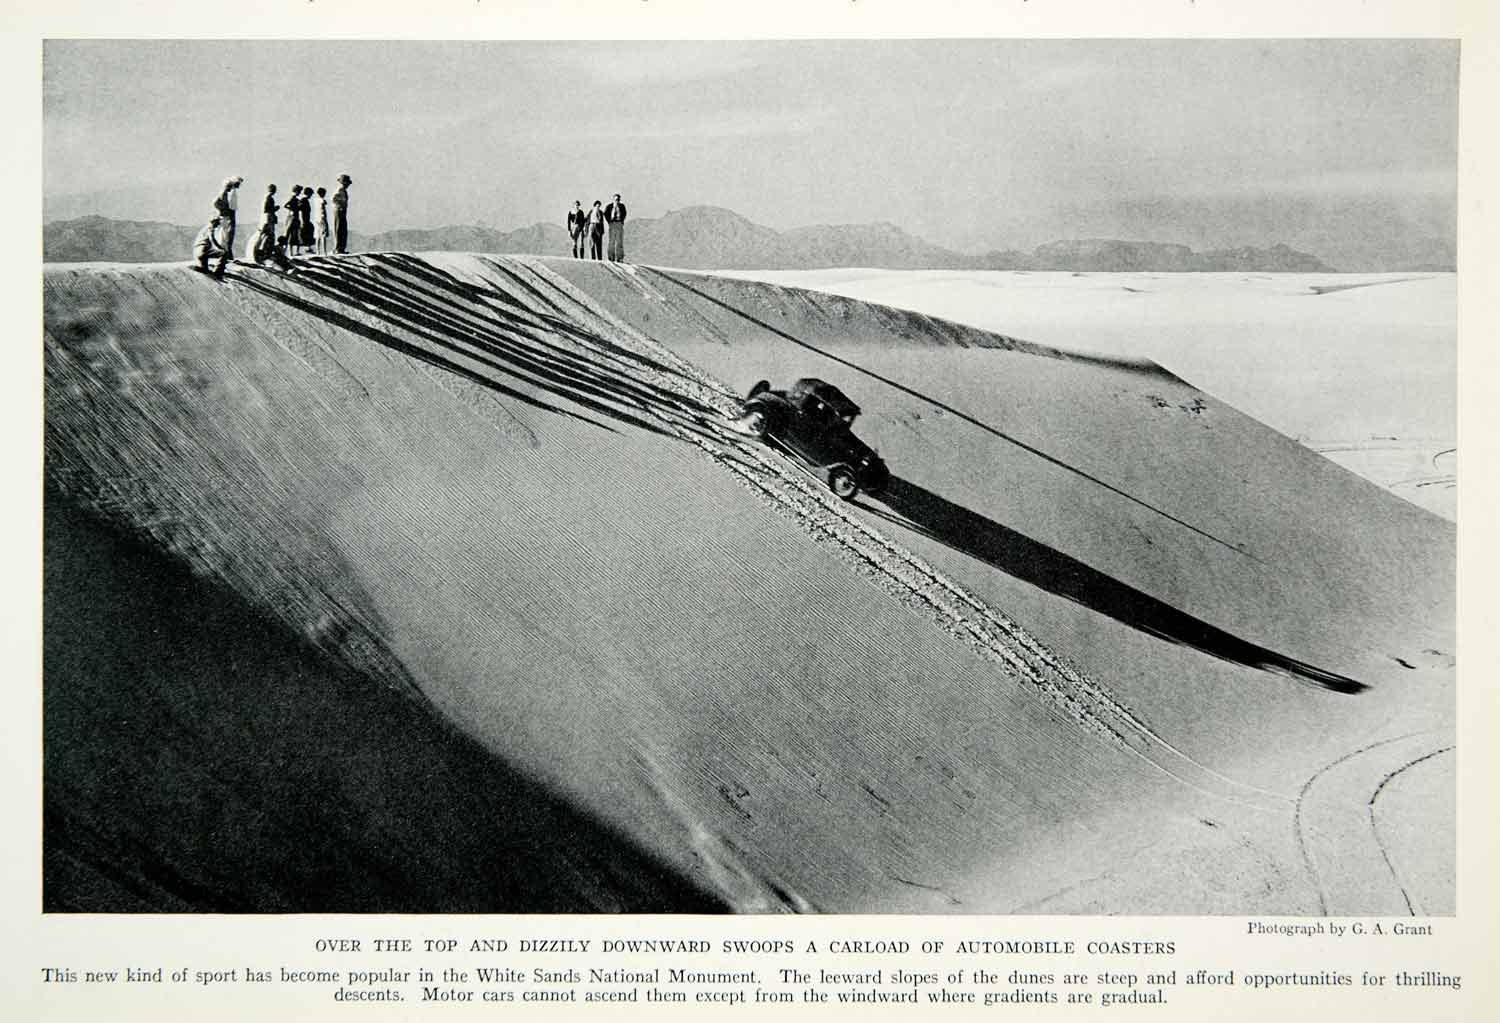 1935 Print Automobile Car Drift Dune White Sands National Monument Nature NGMA5